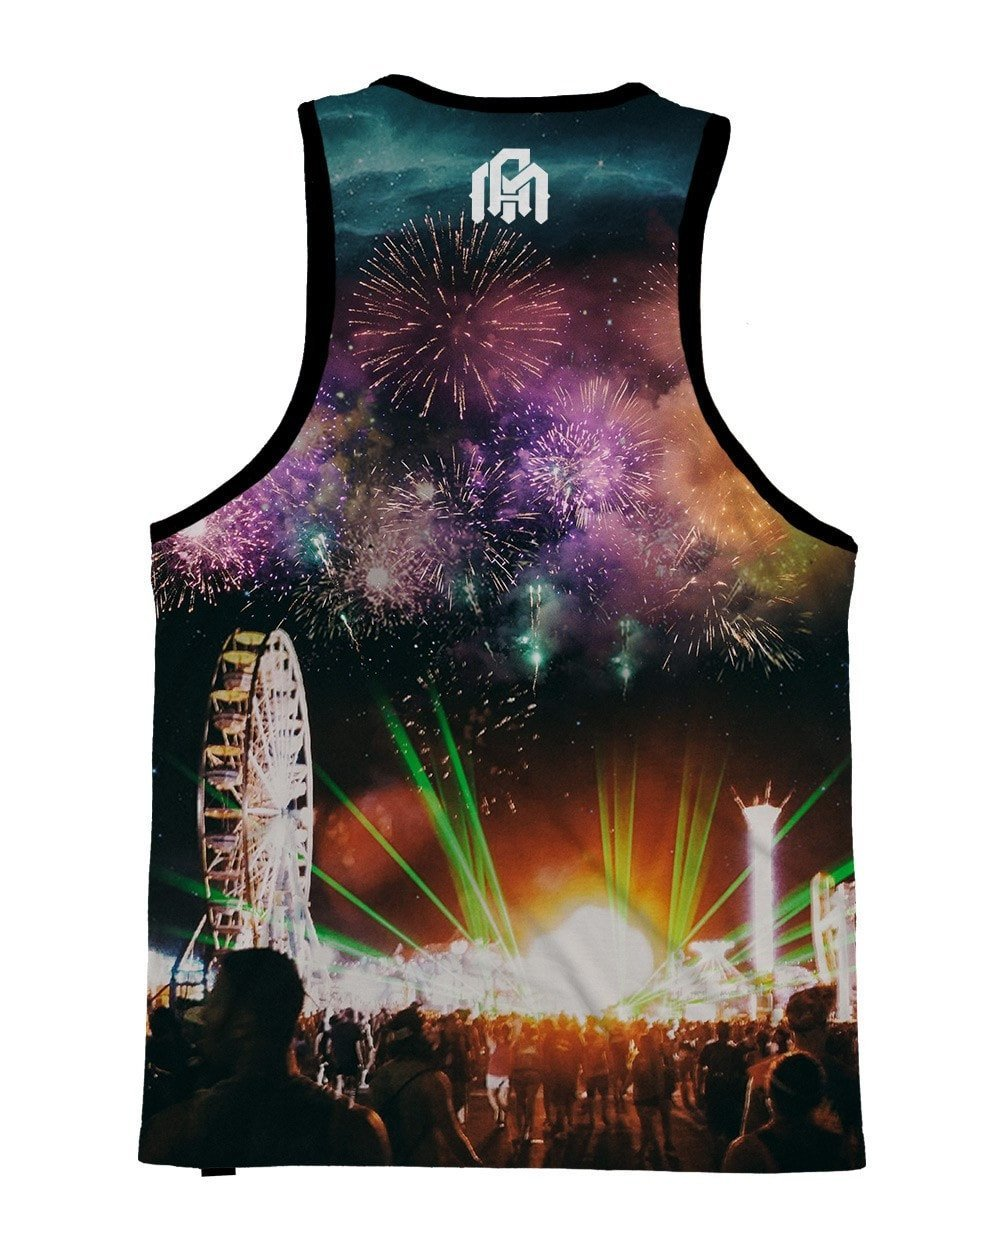 At Night We Come Alive Men's Tank Top